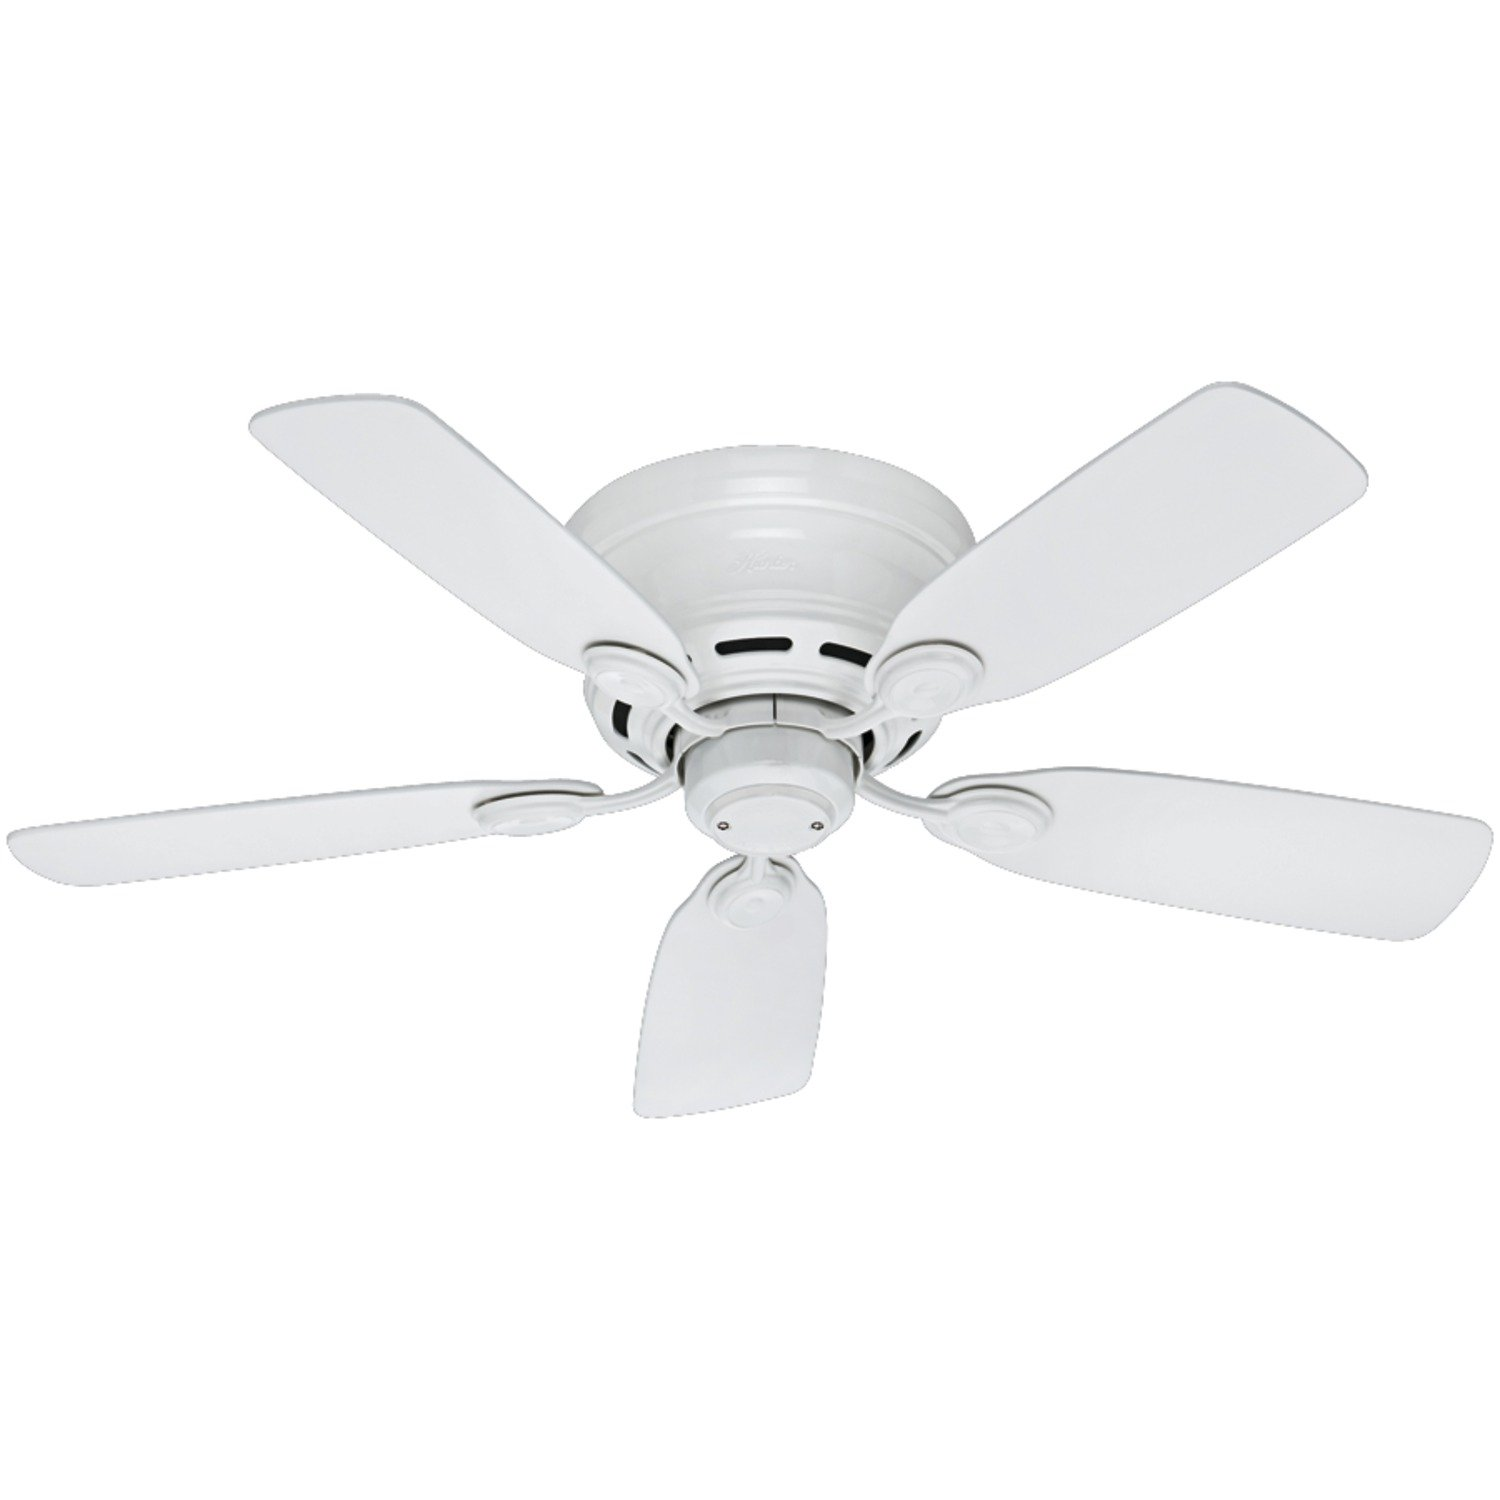 Hunter 51059 Low Profile IV 5-Blade Ceiling Fan, 42-Inch, White Hunter Fan Company